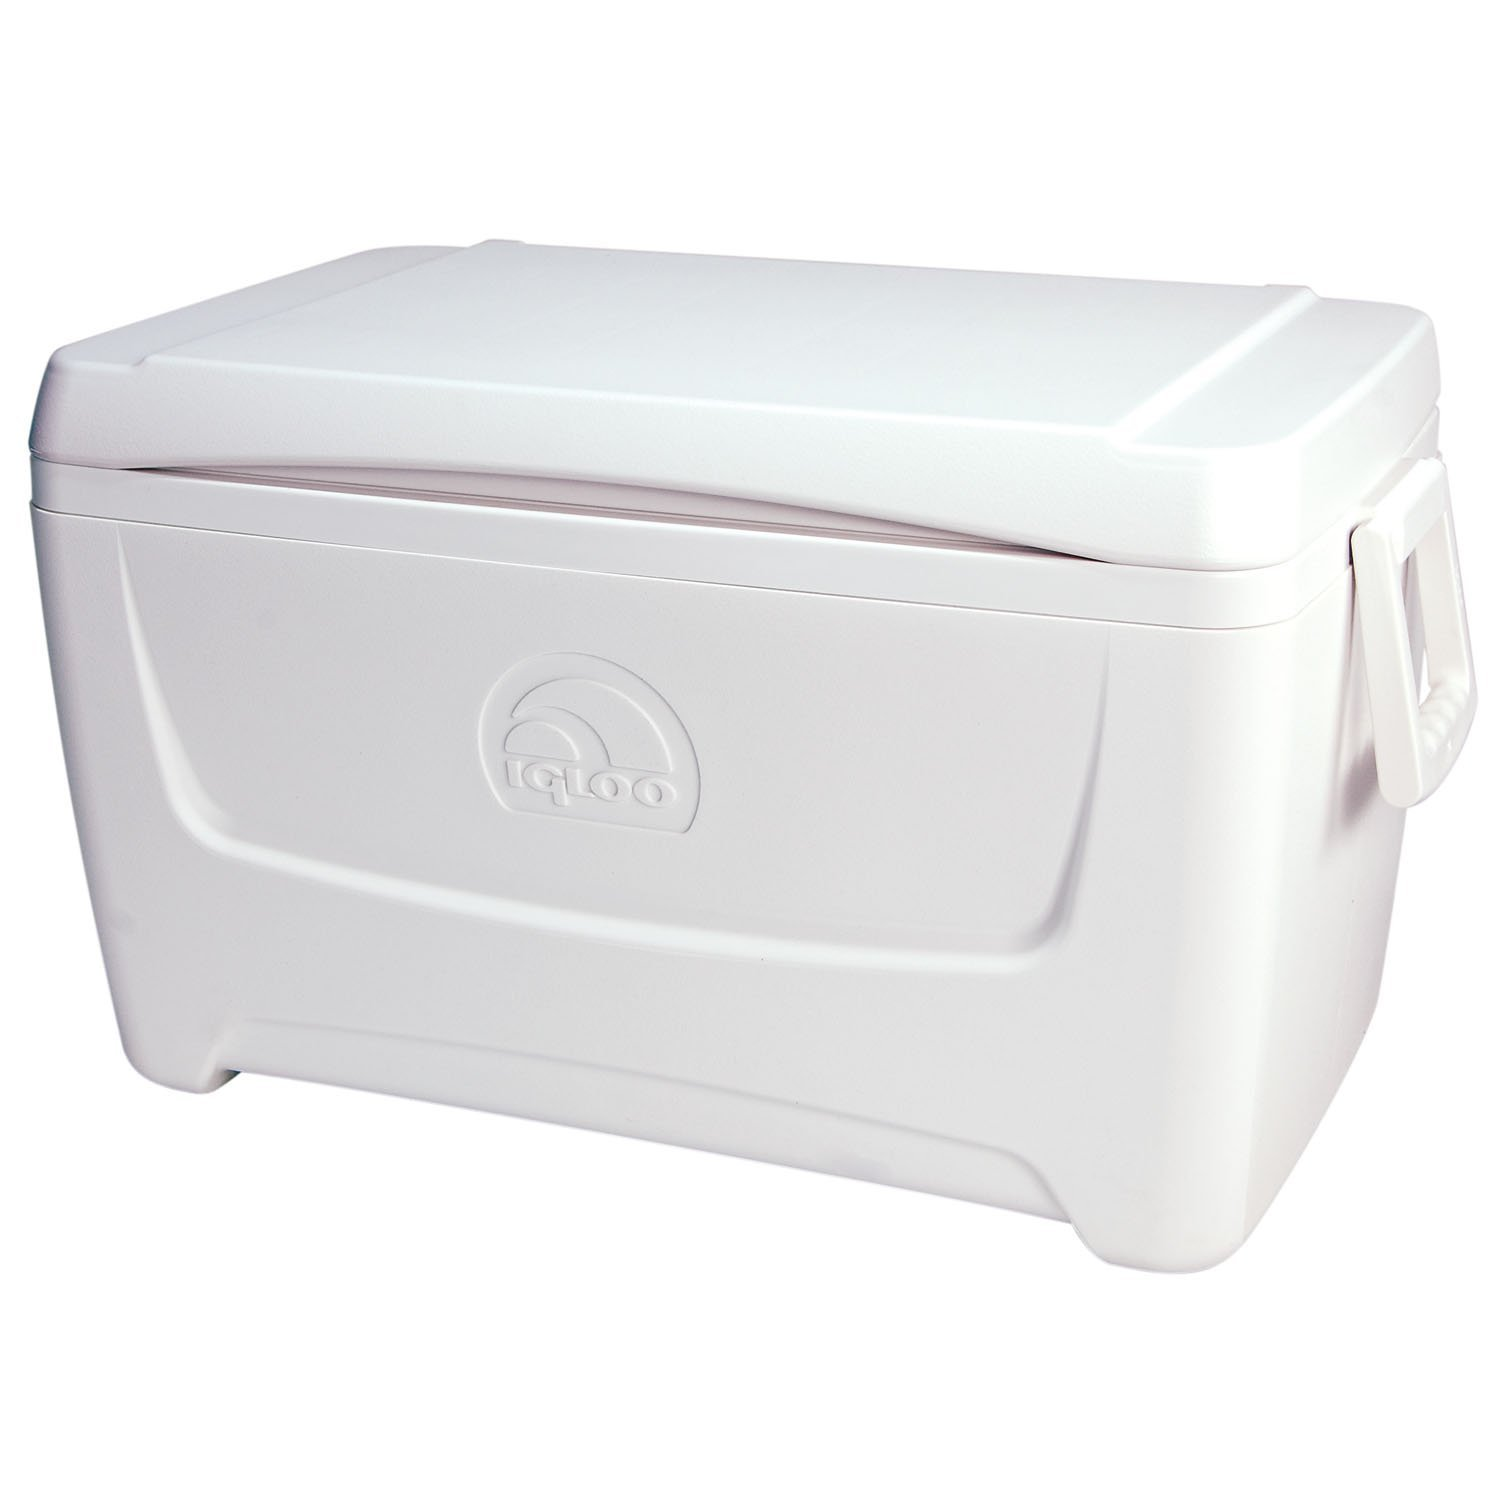 Igloo Marine Coolers